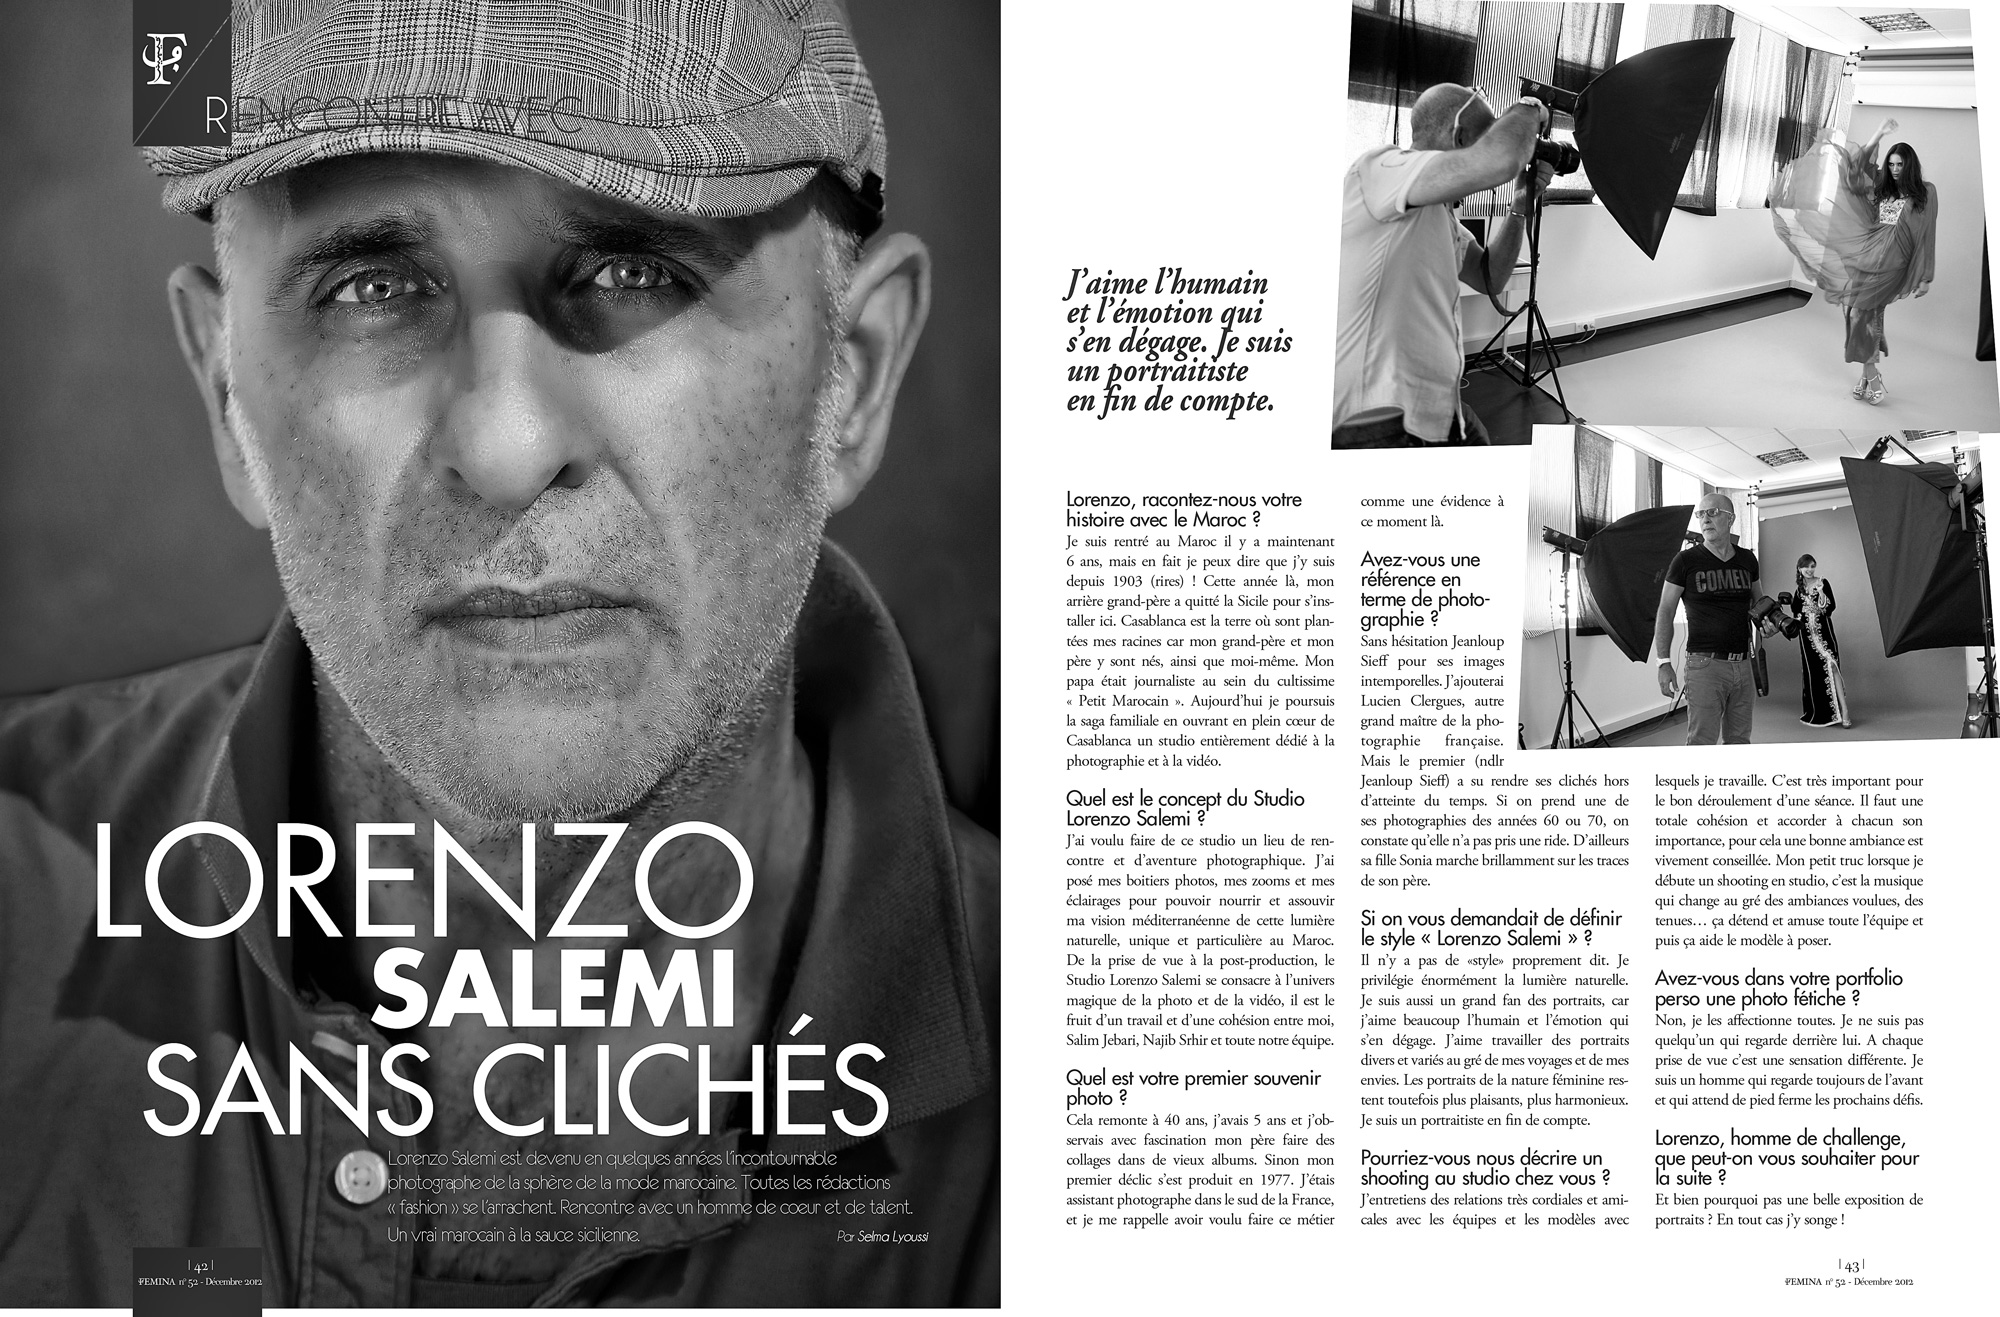 FEMINA-Interview-Lorenzo-1W.jpg